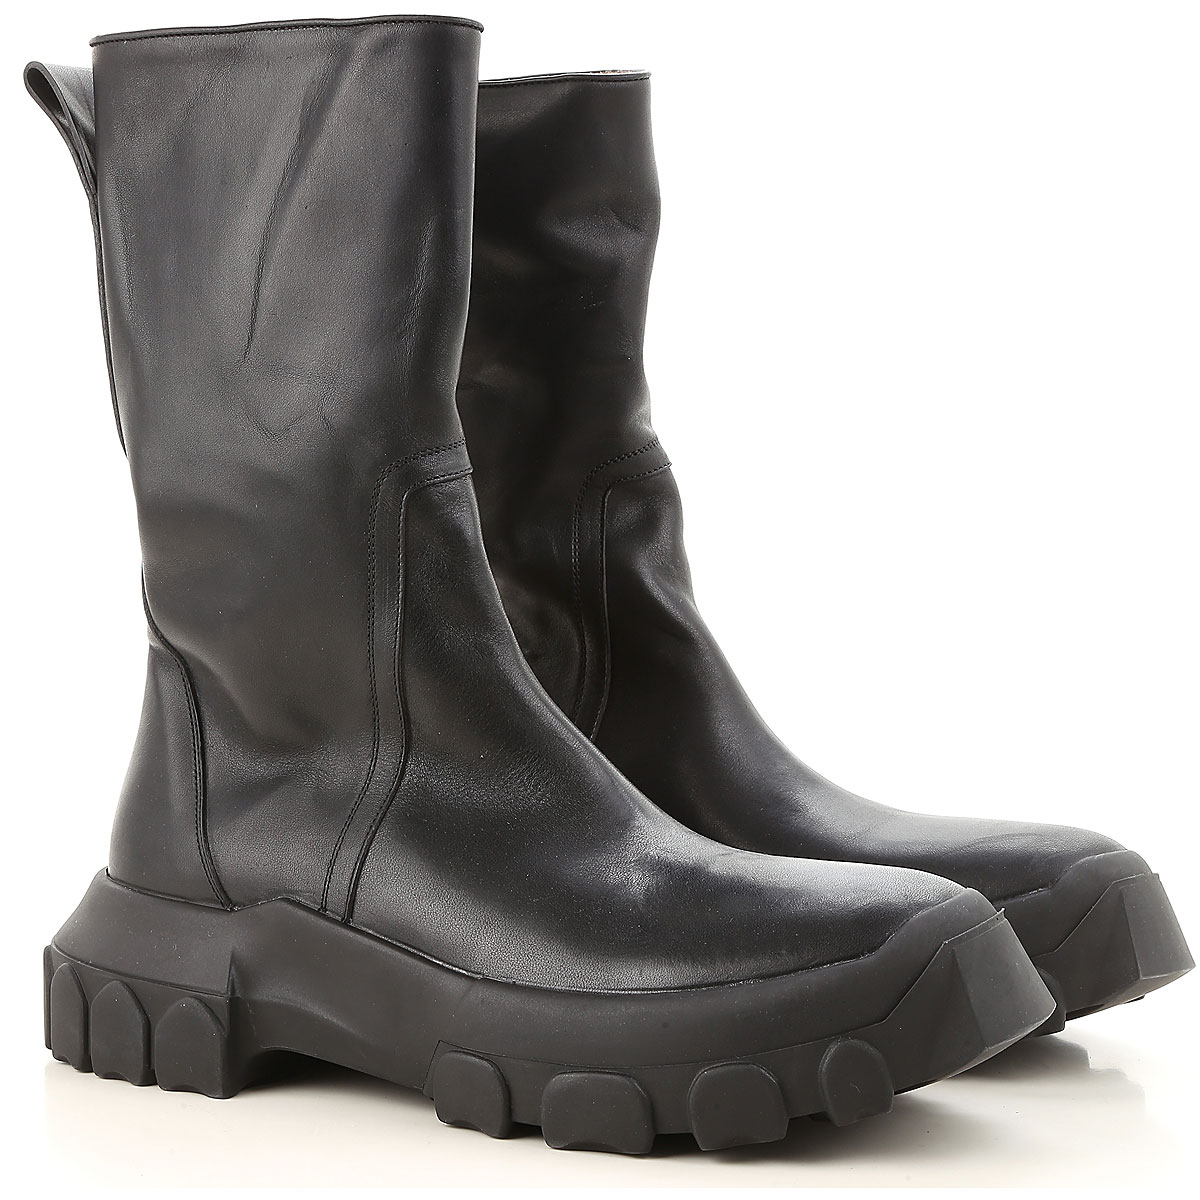 Image of Rick Owens Boots for Men, Booties, Black, Leather, 2017, 10 10.5 7.5 7.75